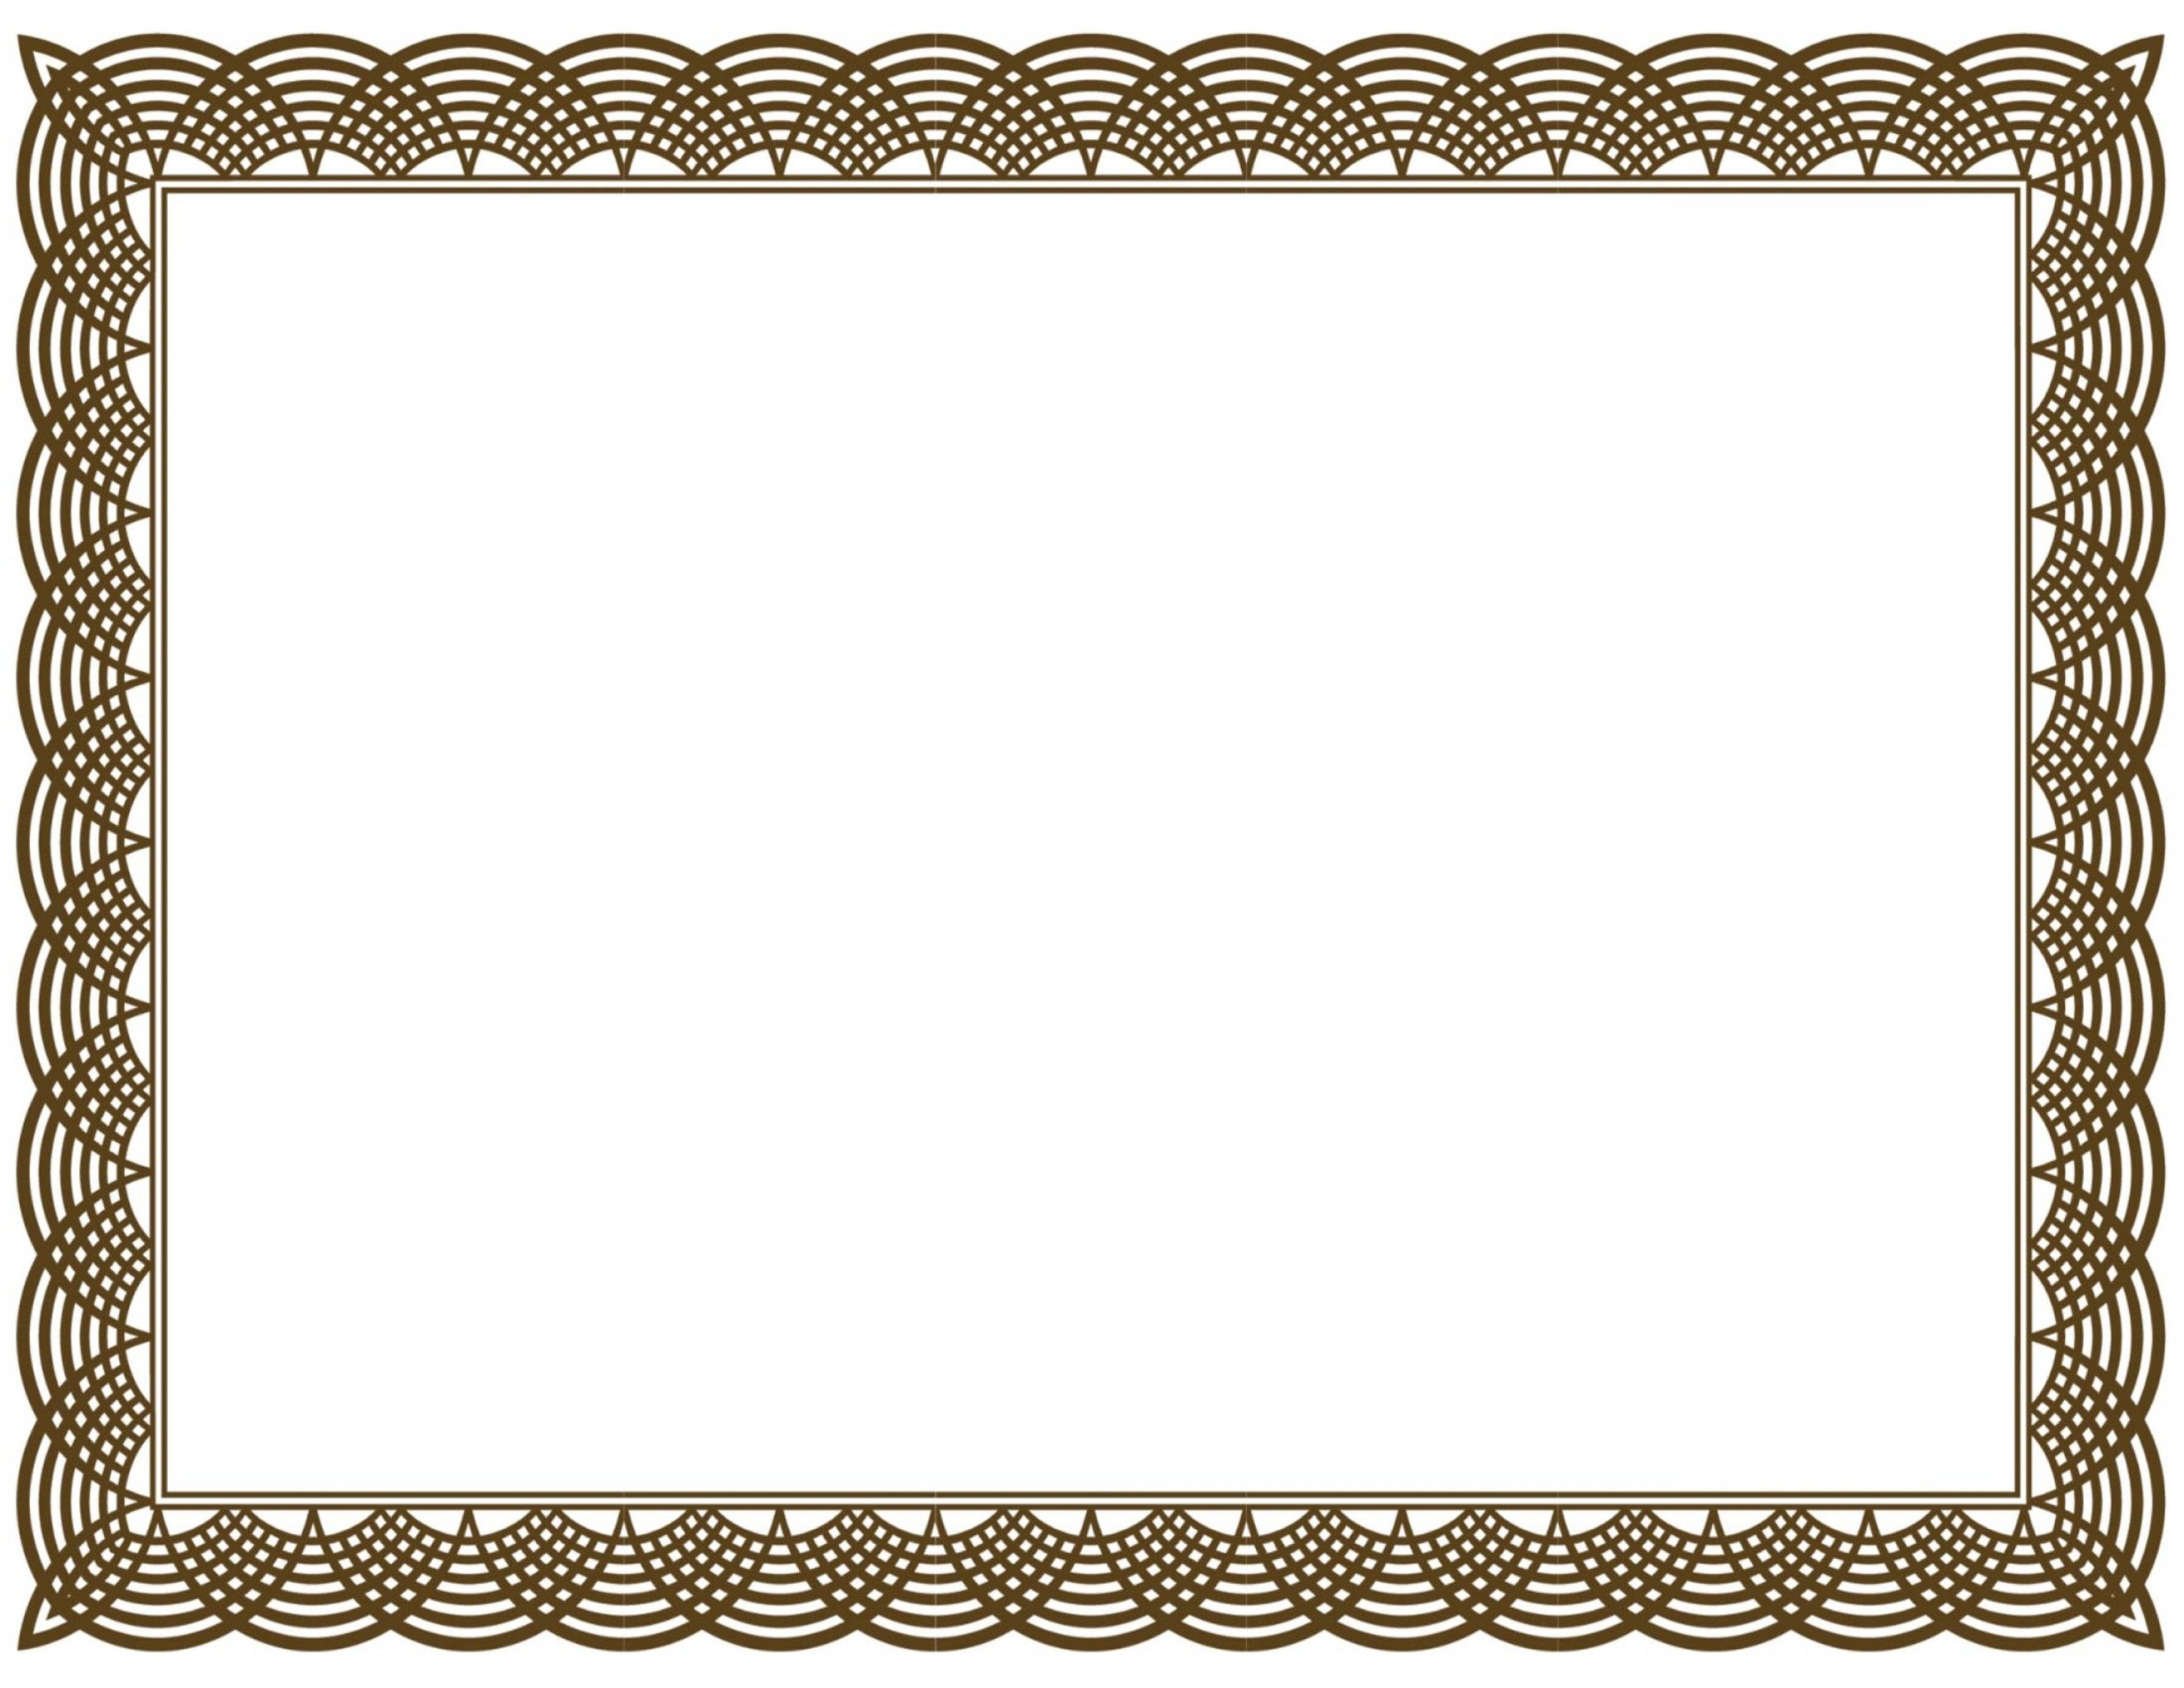 Free Vector Certificate Border Clip Art Layout Vectorealy.